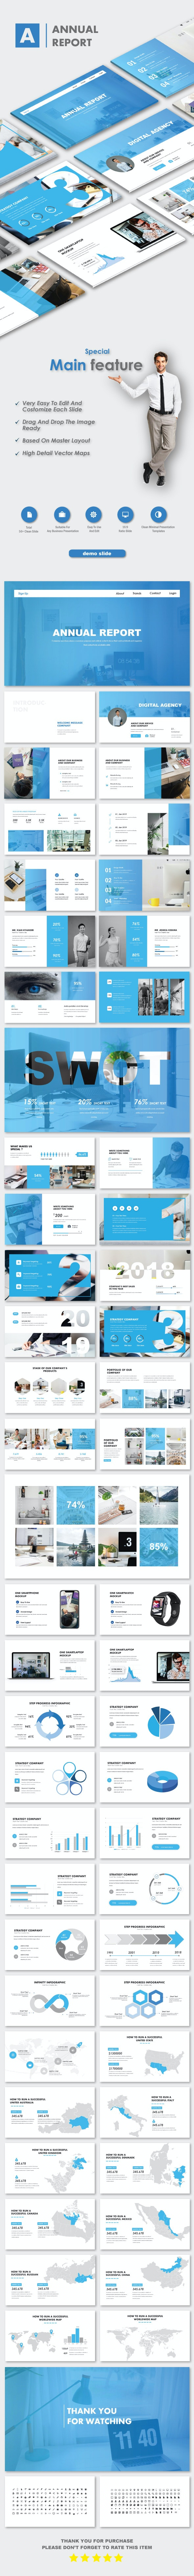 Annual Report 2019 Business Keynote Templates - Business Keynote Templates